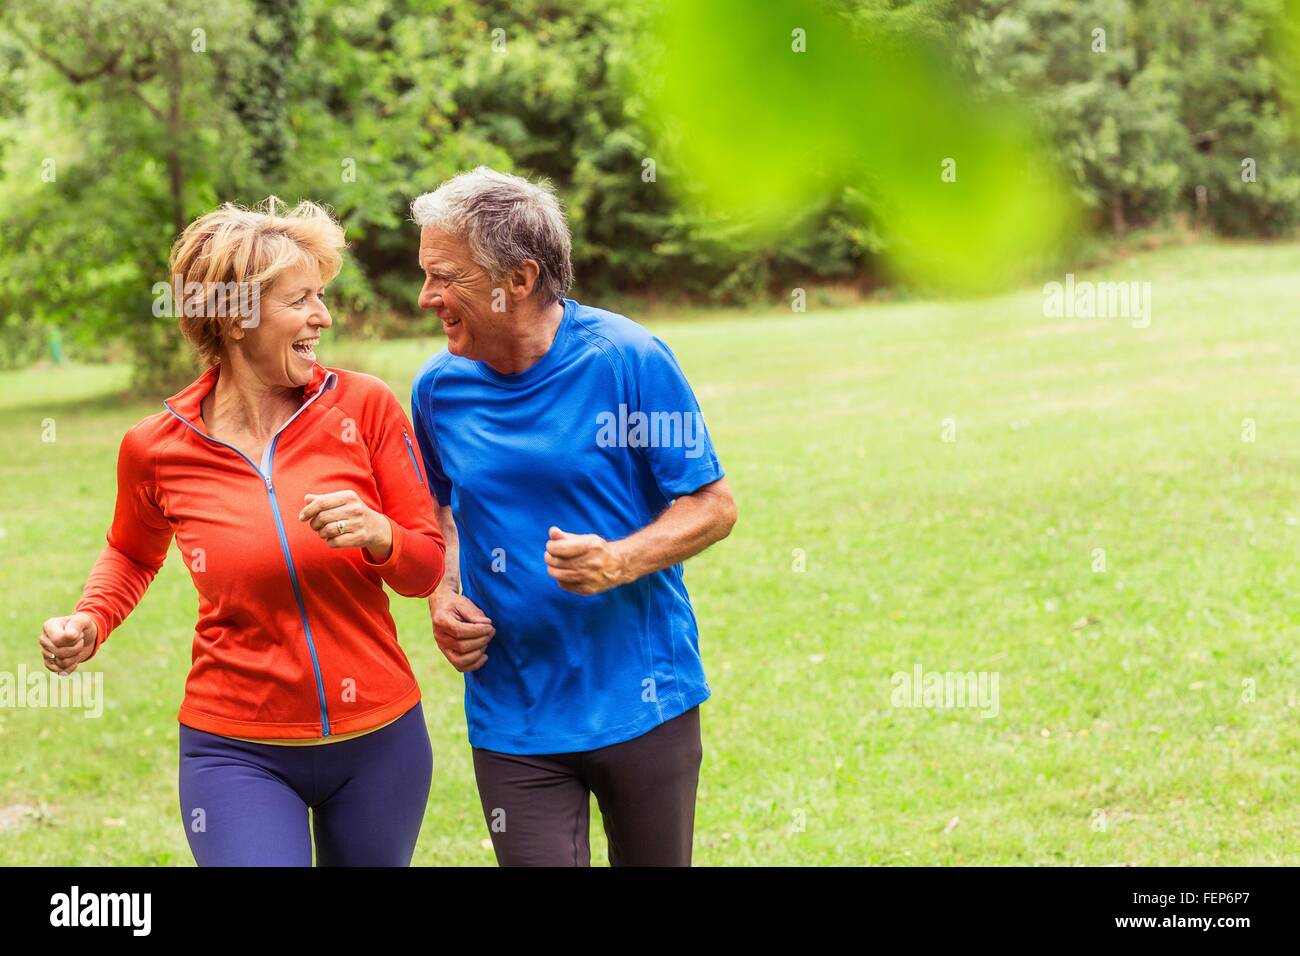 Couple running together outdoors, laughing - Stock Image